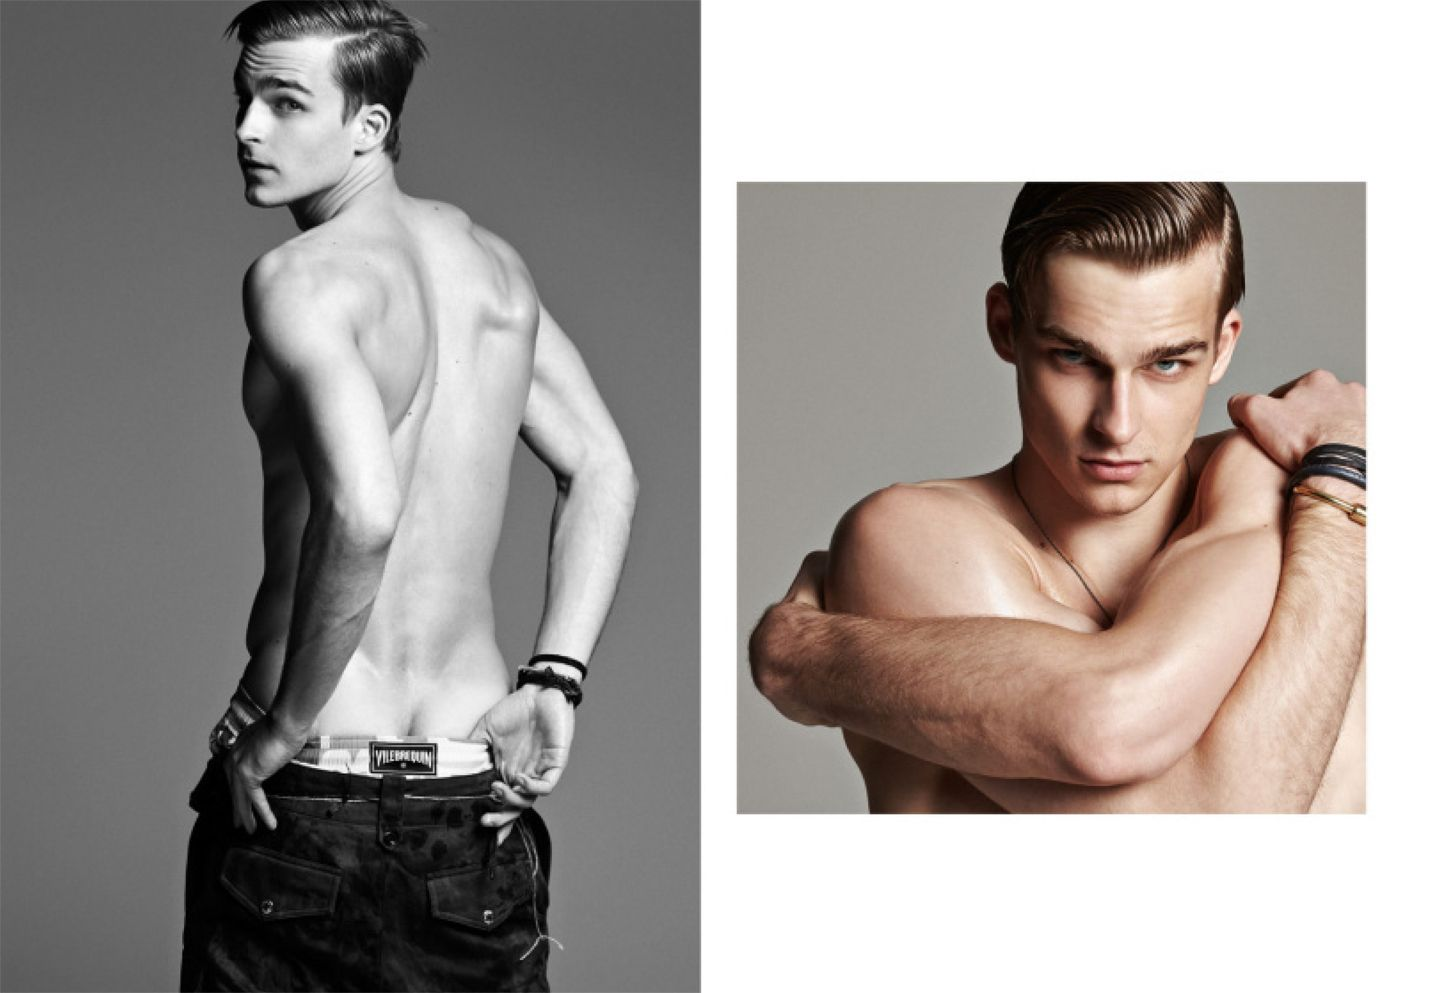 Mariano Ontañon, Arran Sly, Travis Smith + More Are International Beauties for Made in Brazil